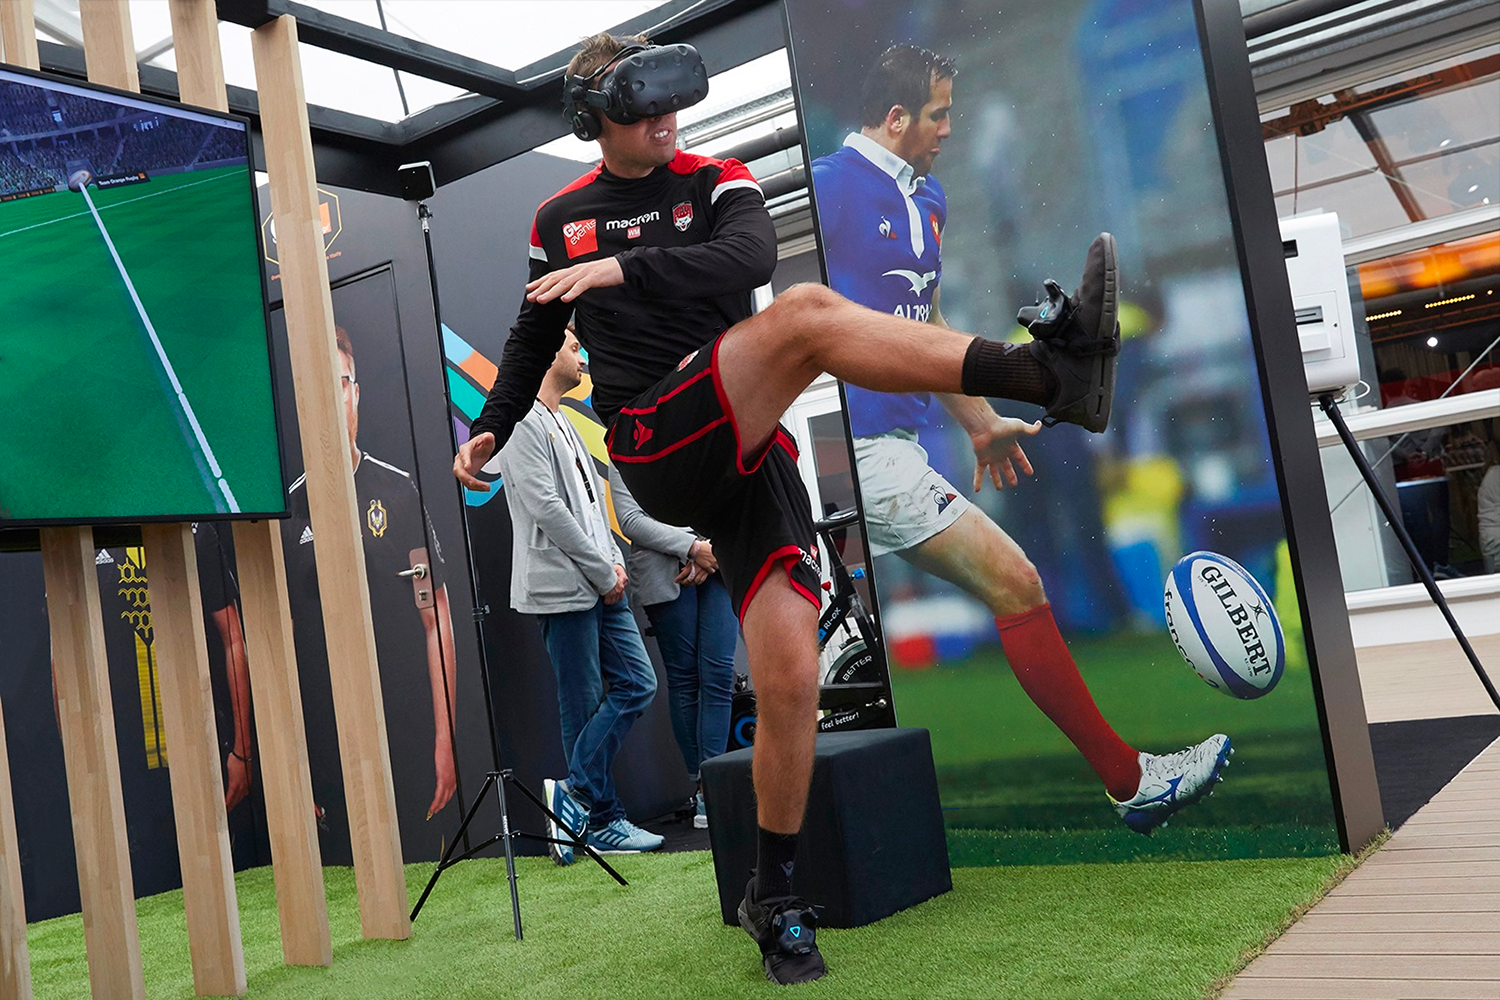 Laval Virtual Days Sport in partnership with Sport Unlimitech